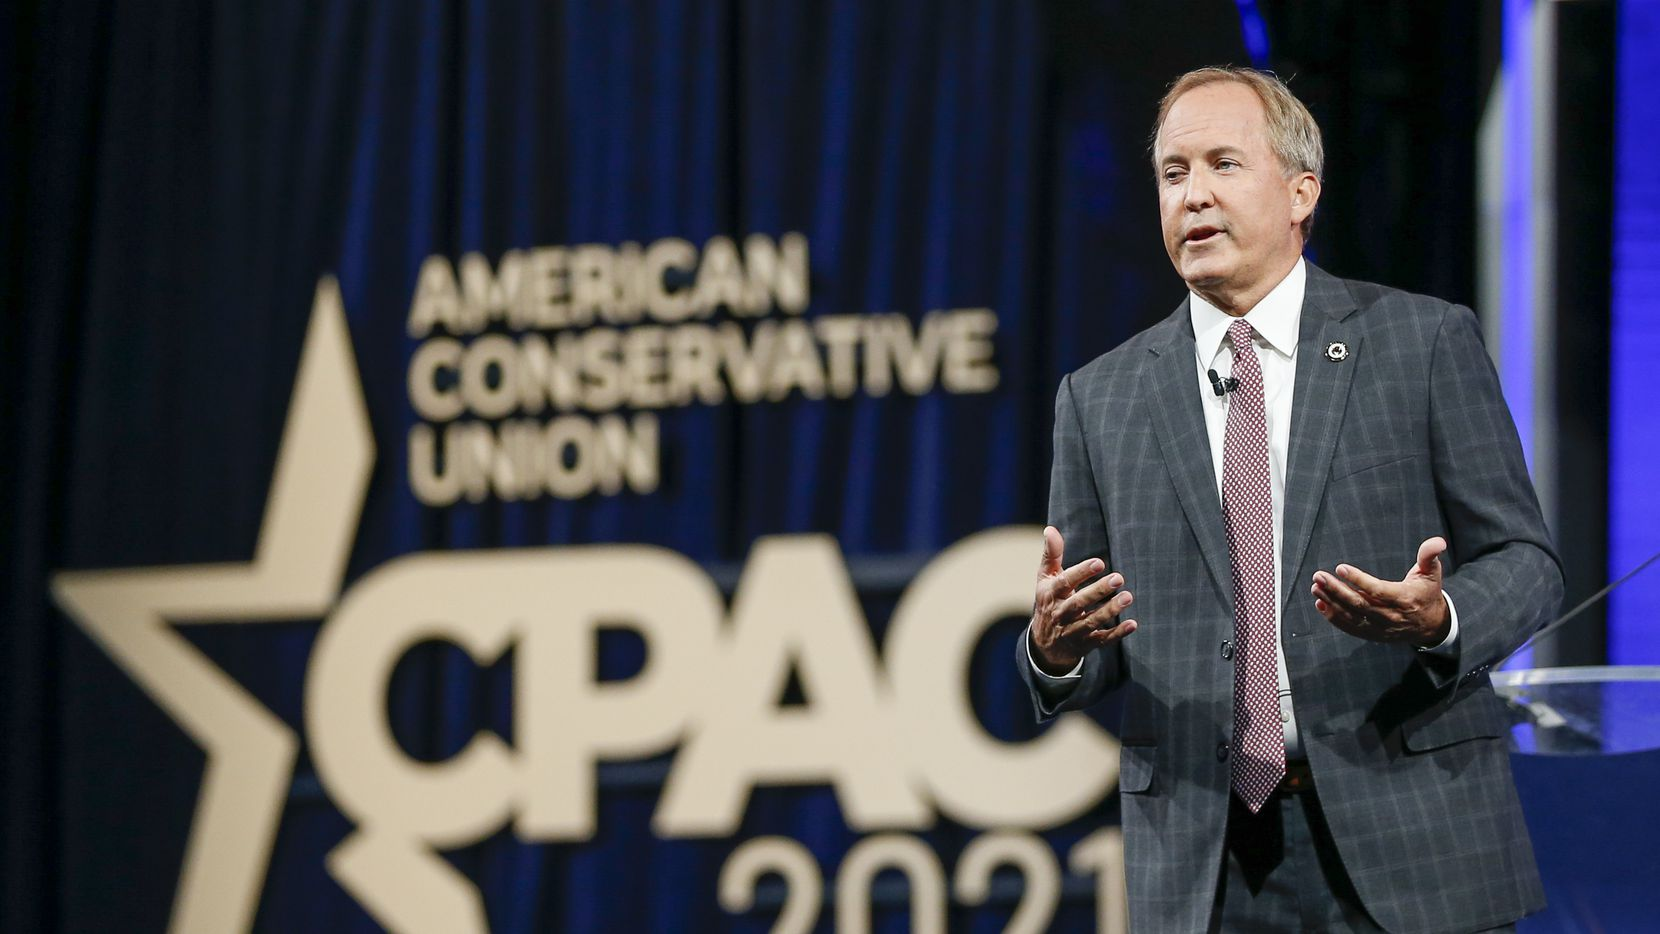 Texas Attorney General Ken Paxton gives remarks at the Conservative Political Action Conference on July 11, 2021, in Dallas.